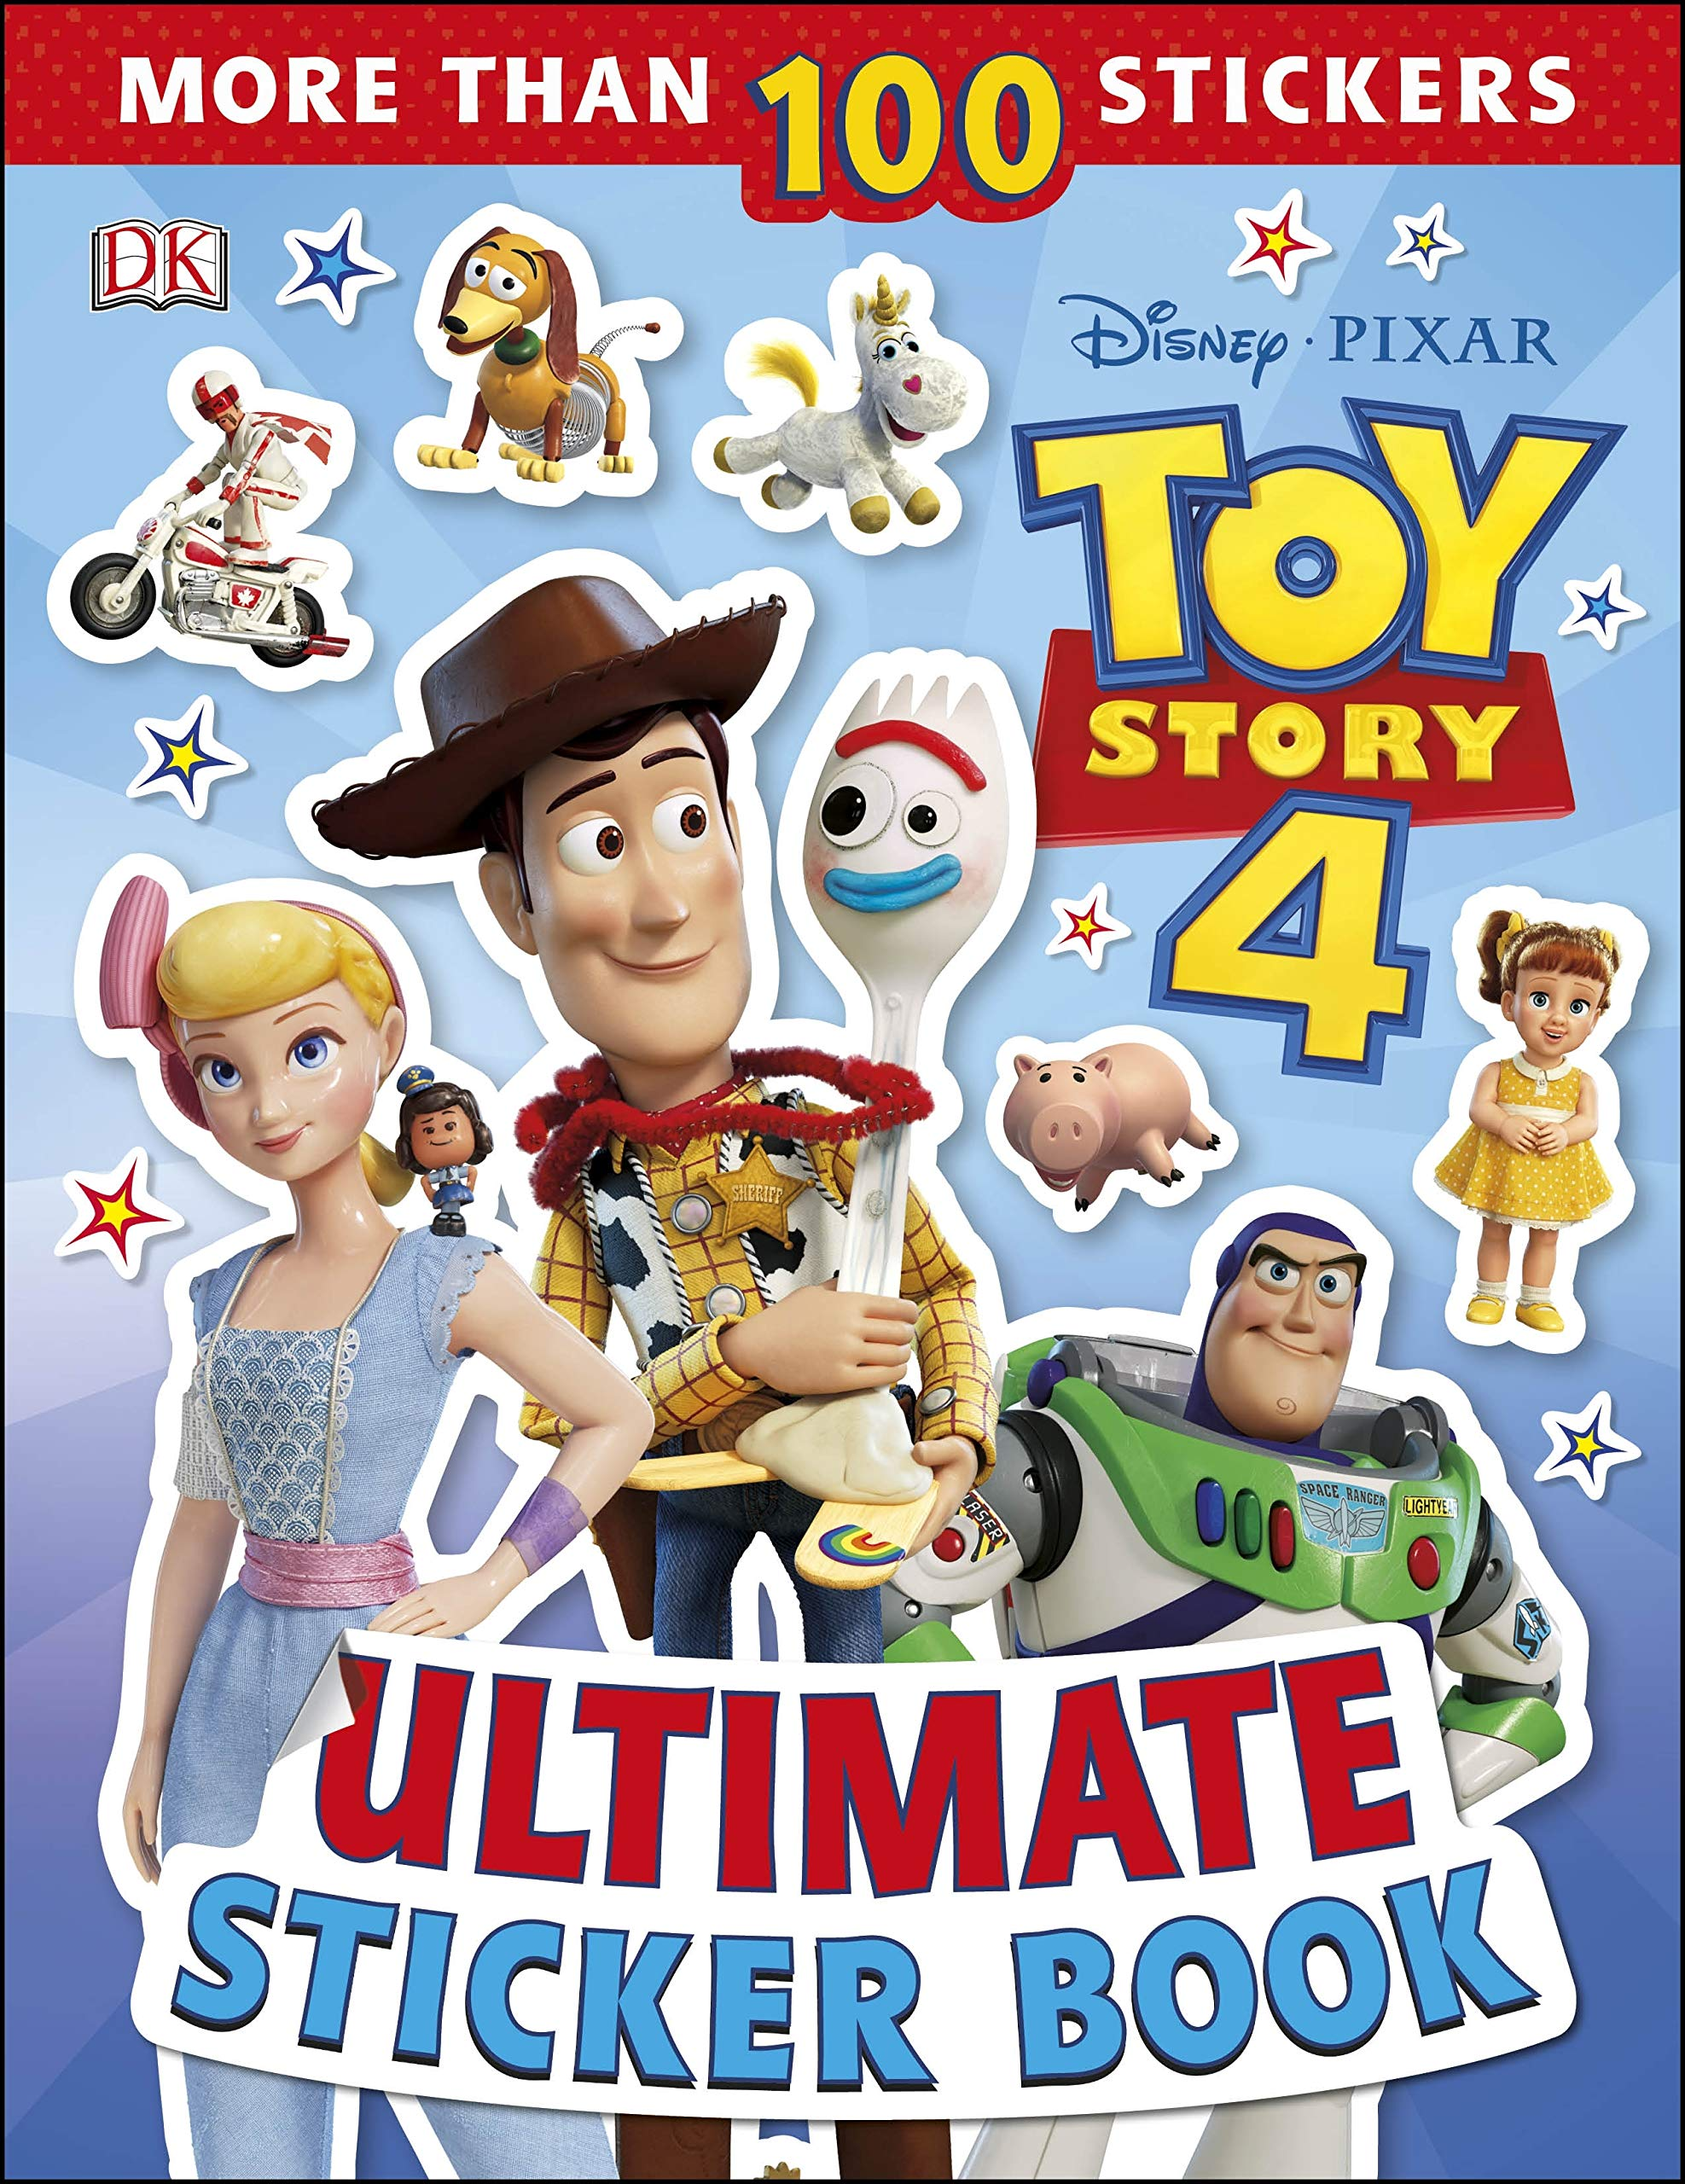 Image for Ultimate Sticker Book: Disney Pixar Toy Story 4